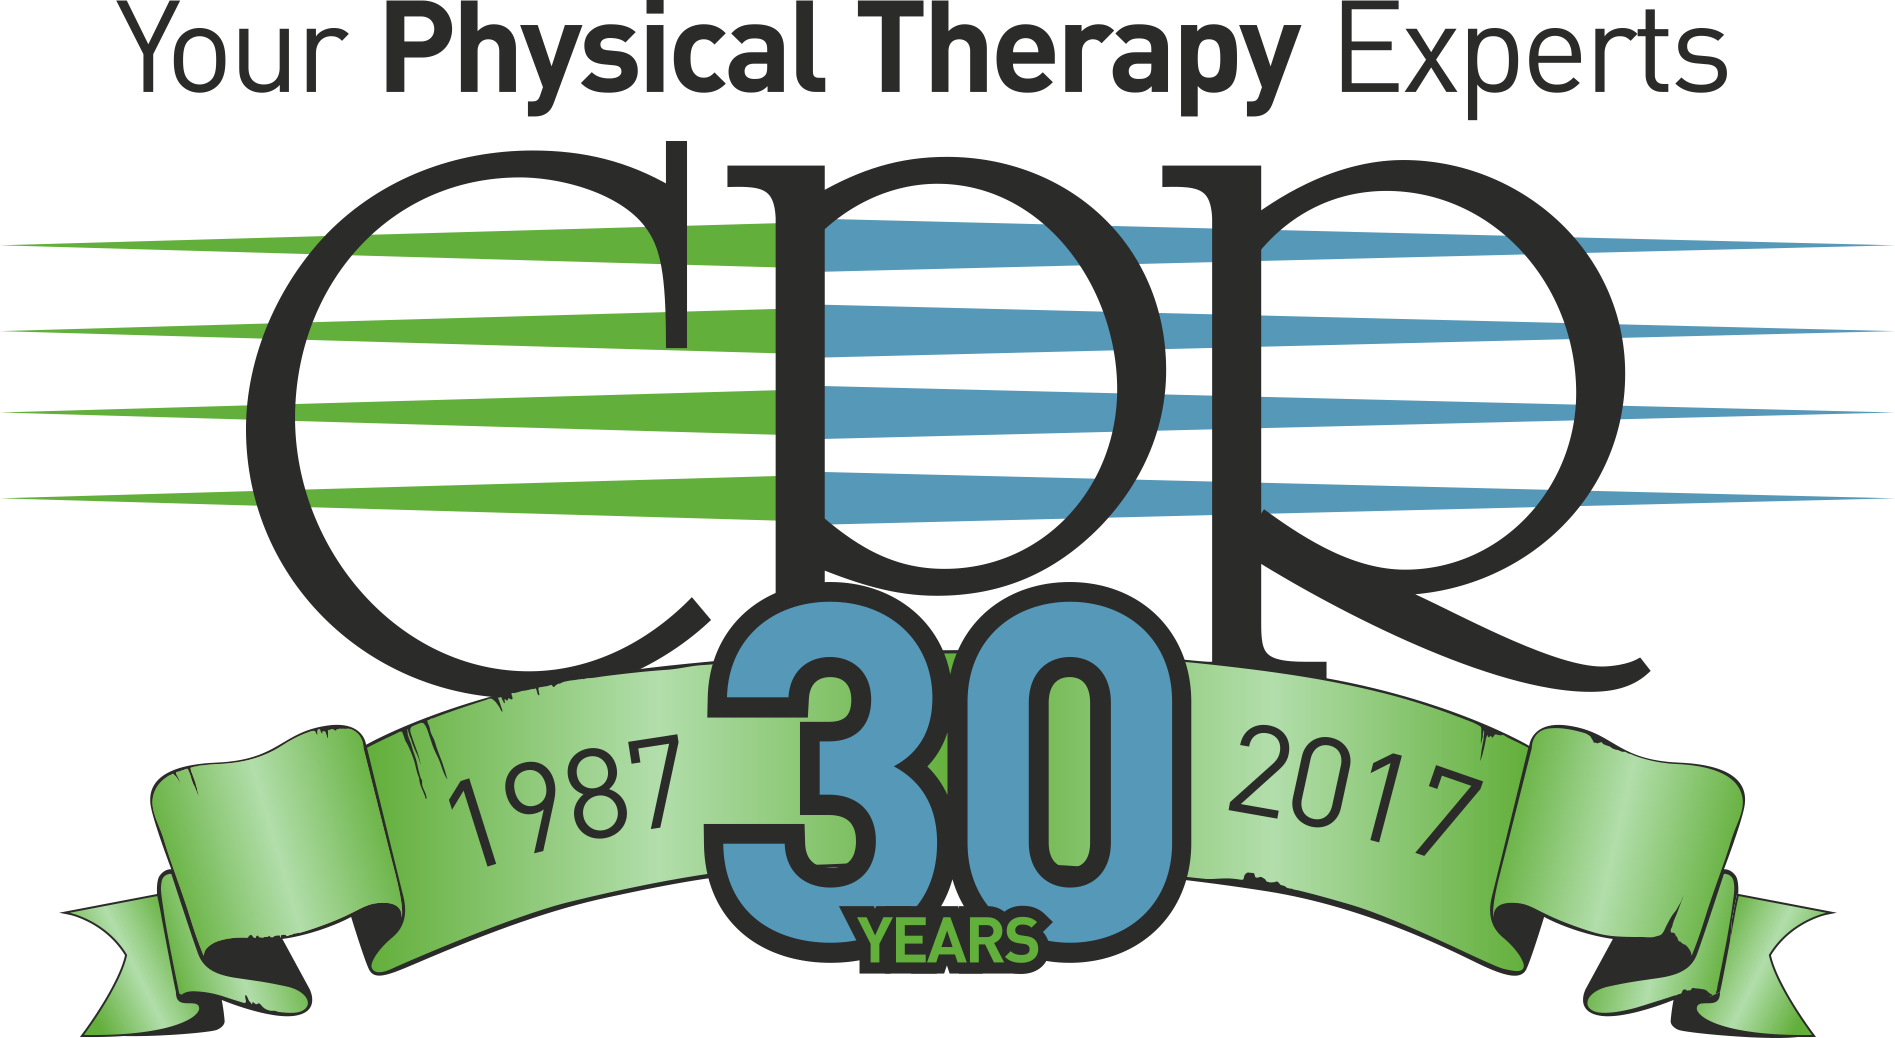 CPR 30 year logo